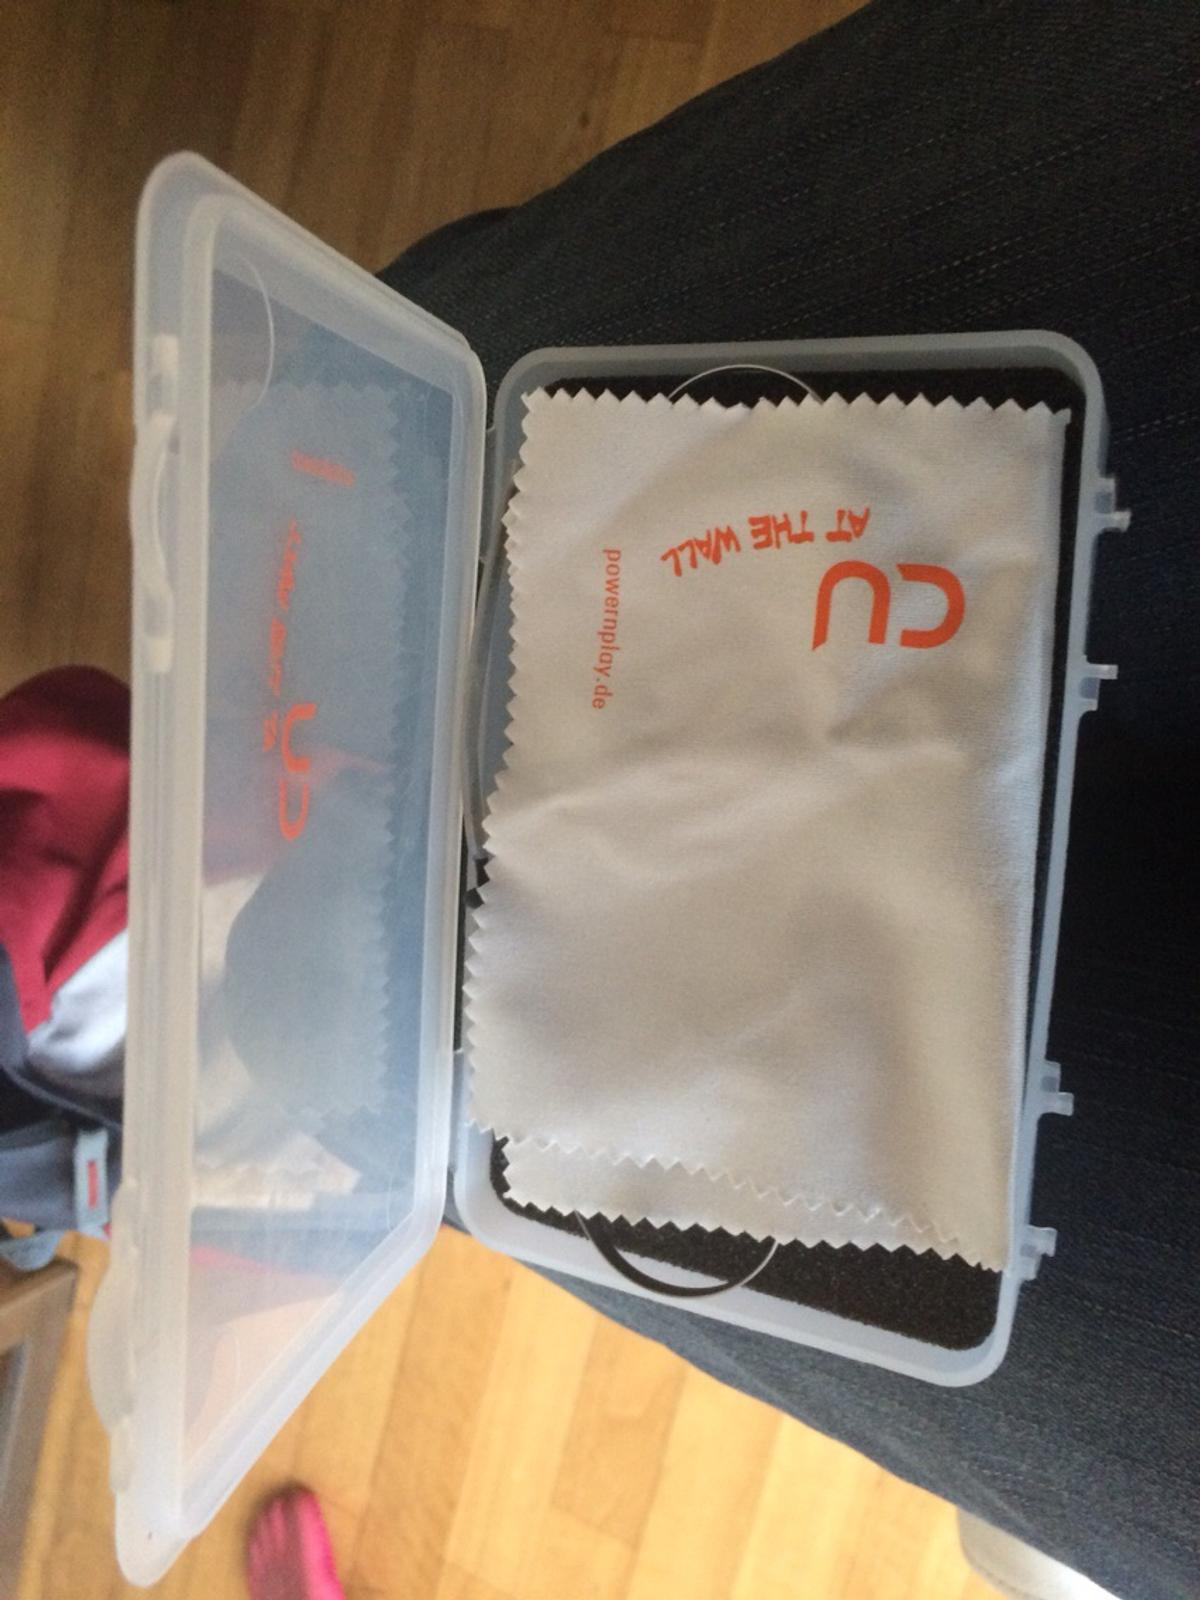 Cu Kletter Brille Sicherungsbrille In 6020 Innsbruck For 70 00 For Sale Shpock